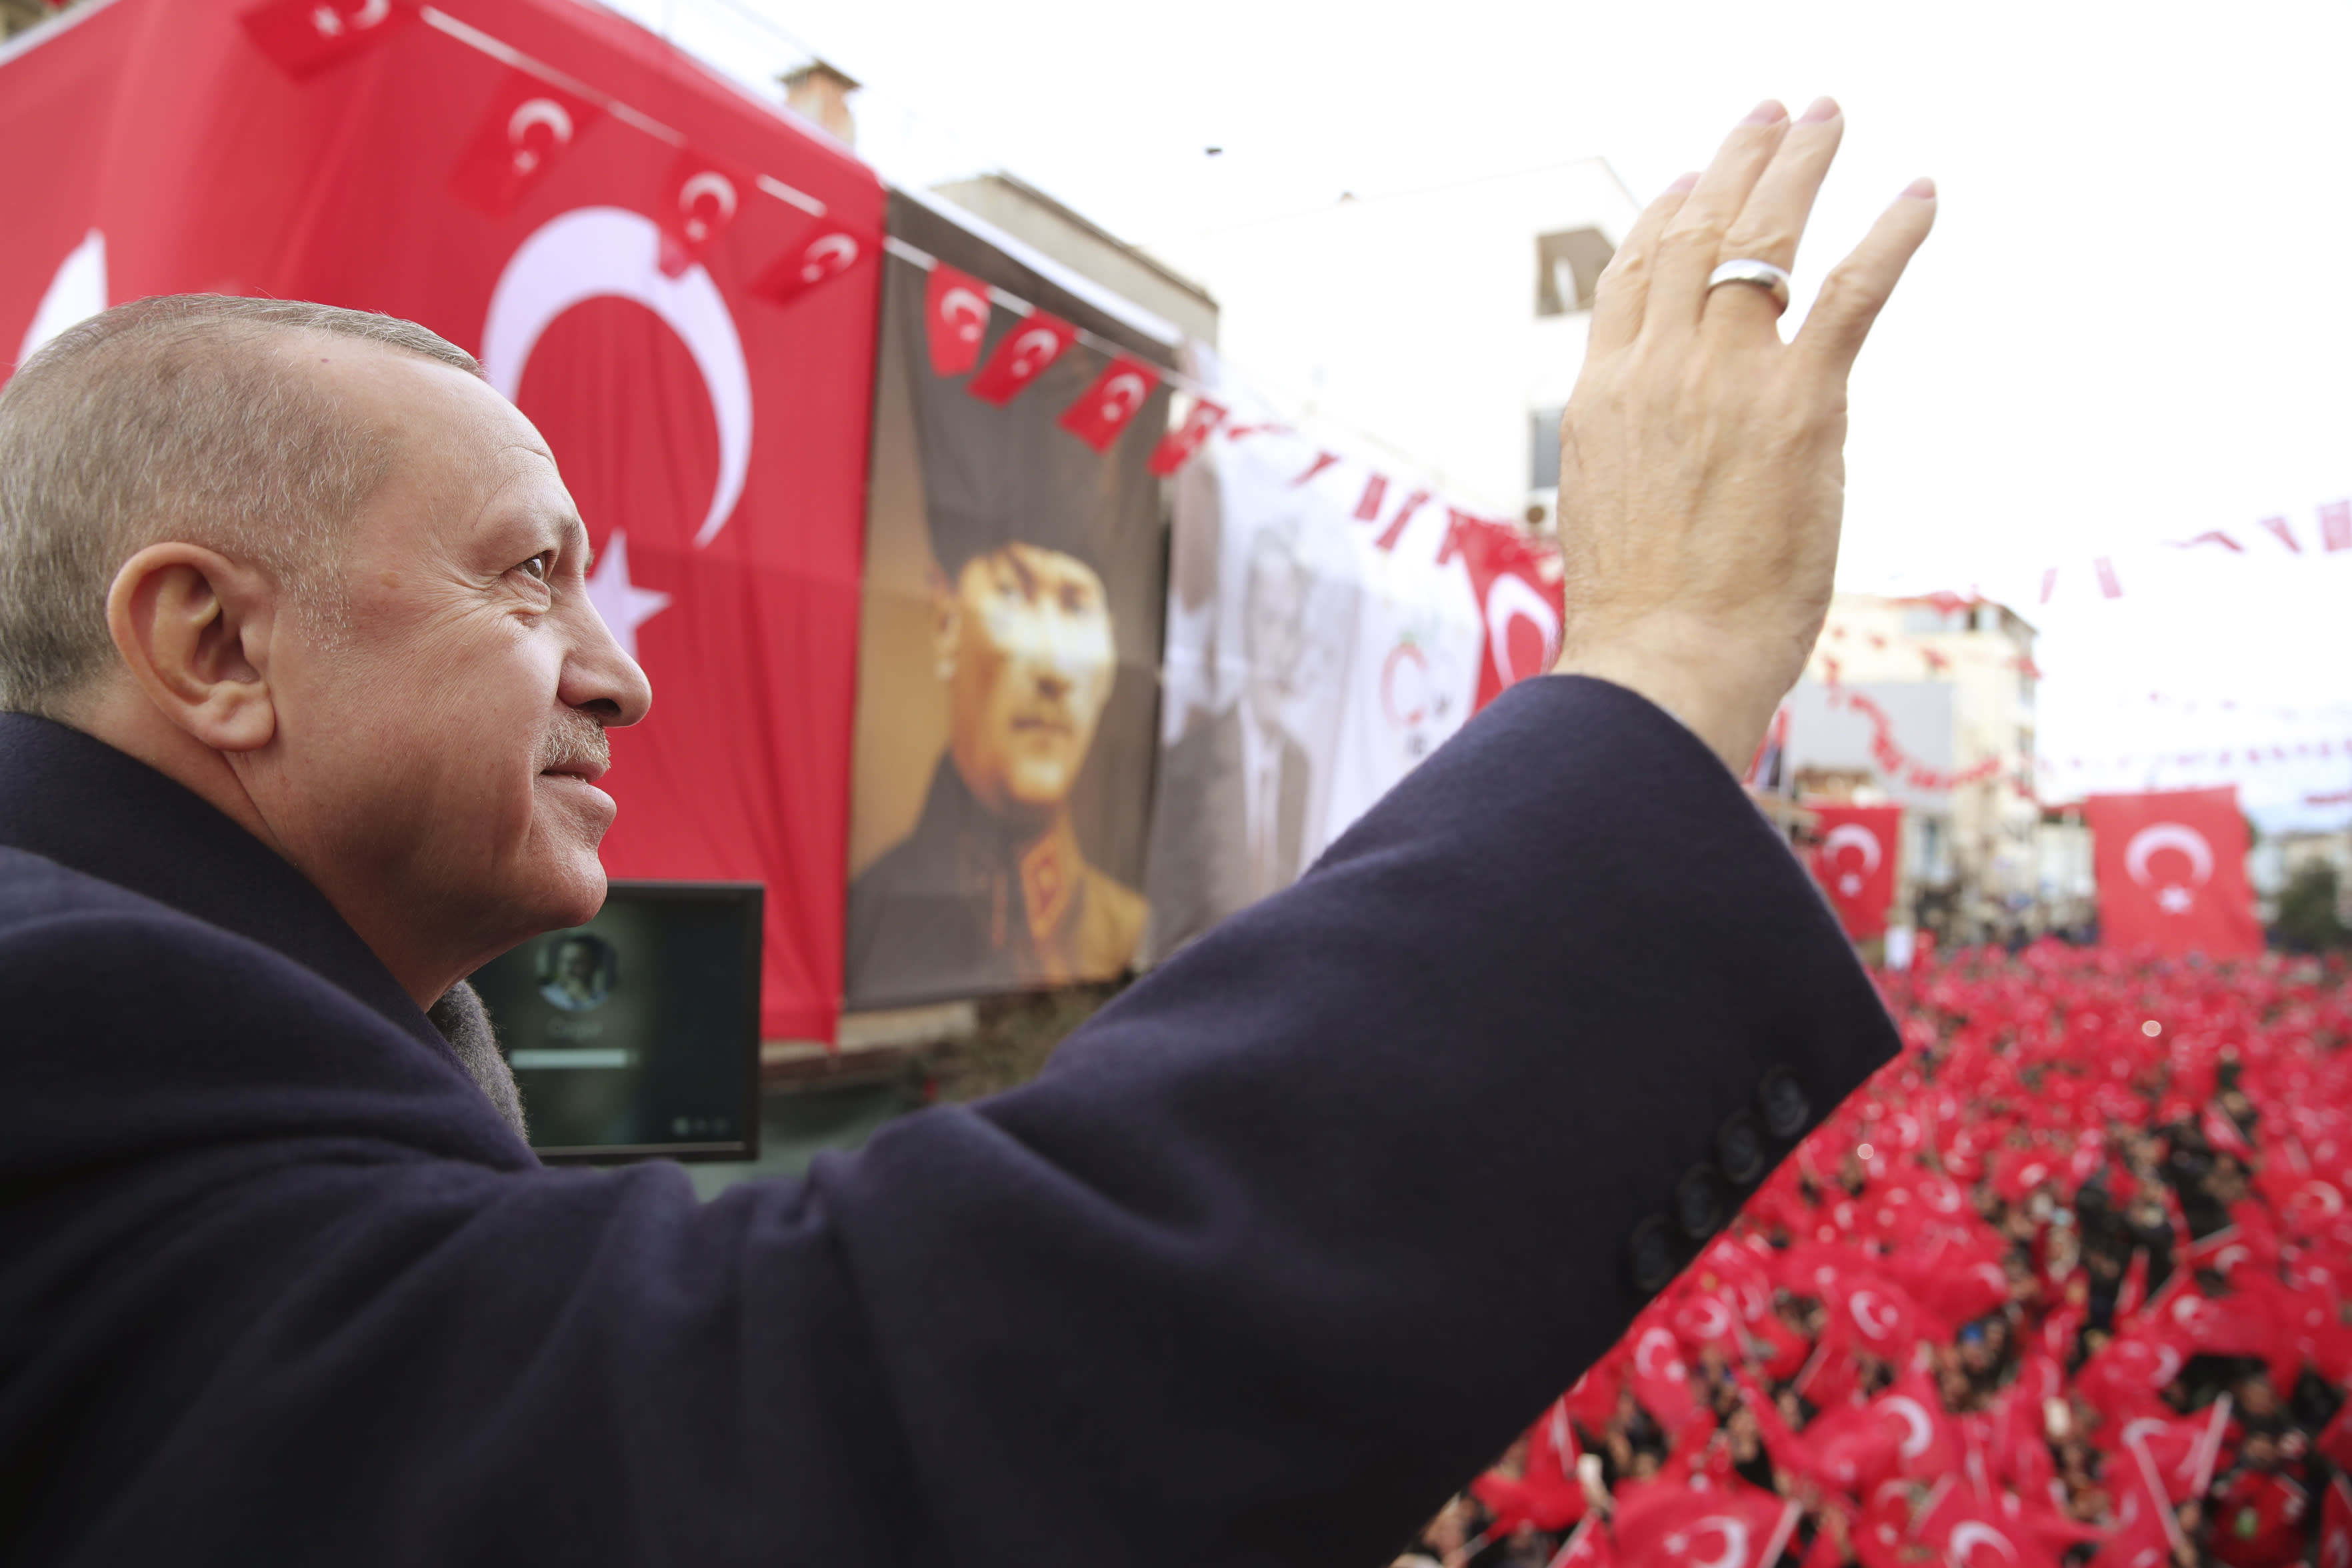 Turkish President Recep Tayyip Erdogan addresses his supporters, in Izmir, Turkey, Saturday, Feb. 22, 2020. A Turkish soldier was killed in Syria's northwest Idlib province, state-run Anadolu news agency reported Saturday. He was at least the 16th member of the Turkish military to die in February during an offensive by Syrian government forces. (Presidential Press Service via AP, Pool)